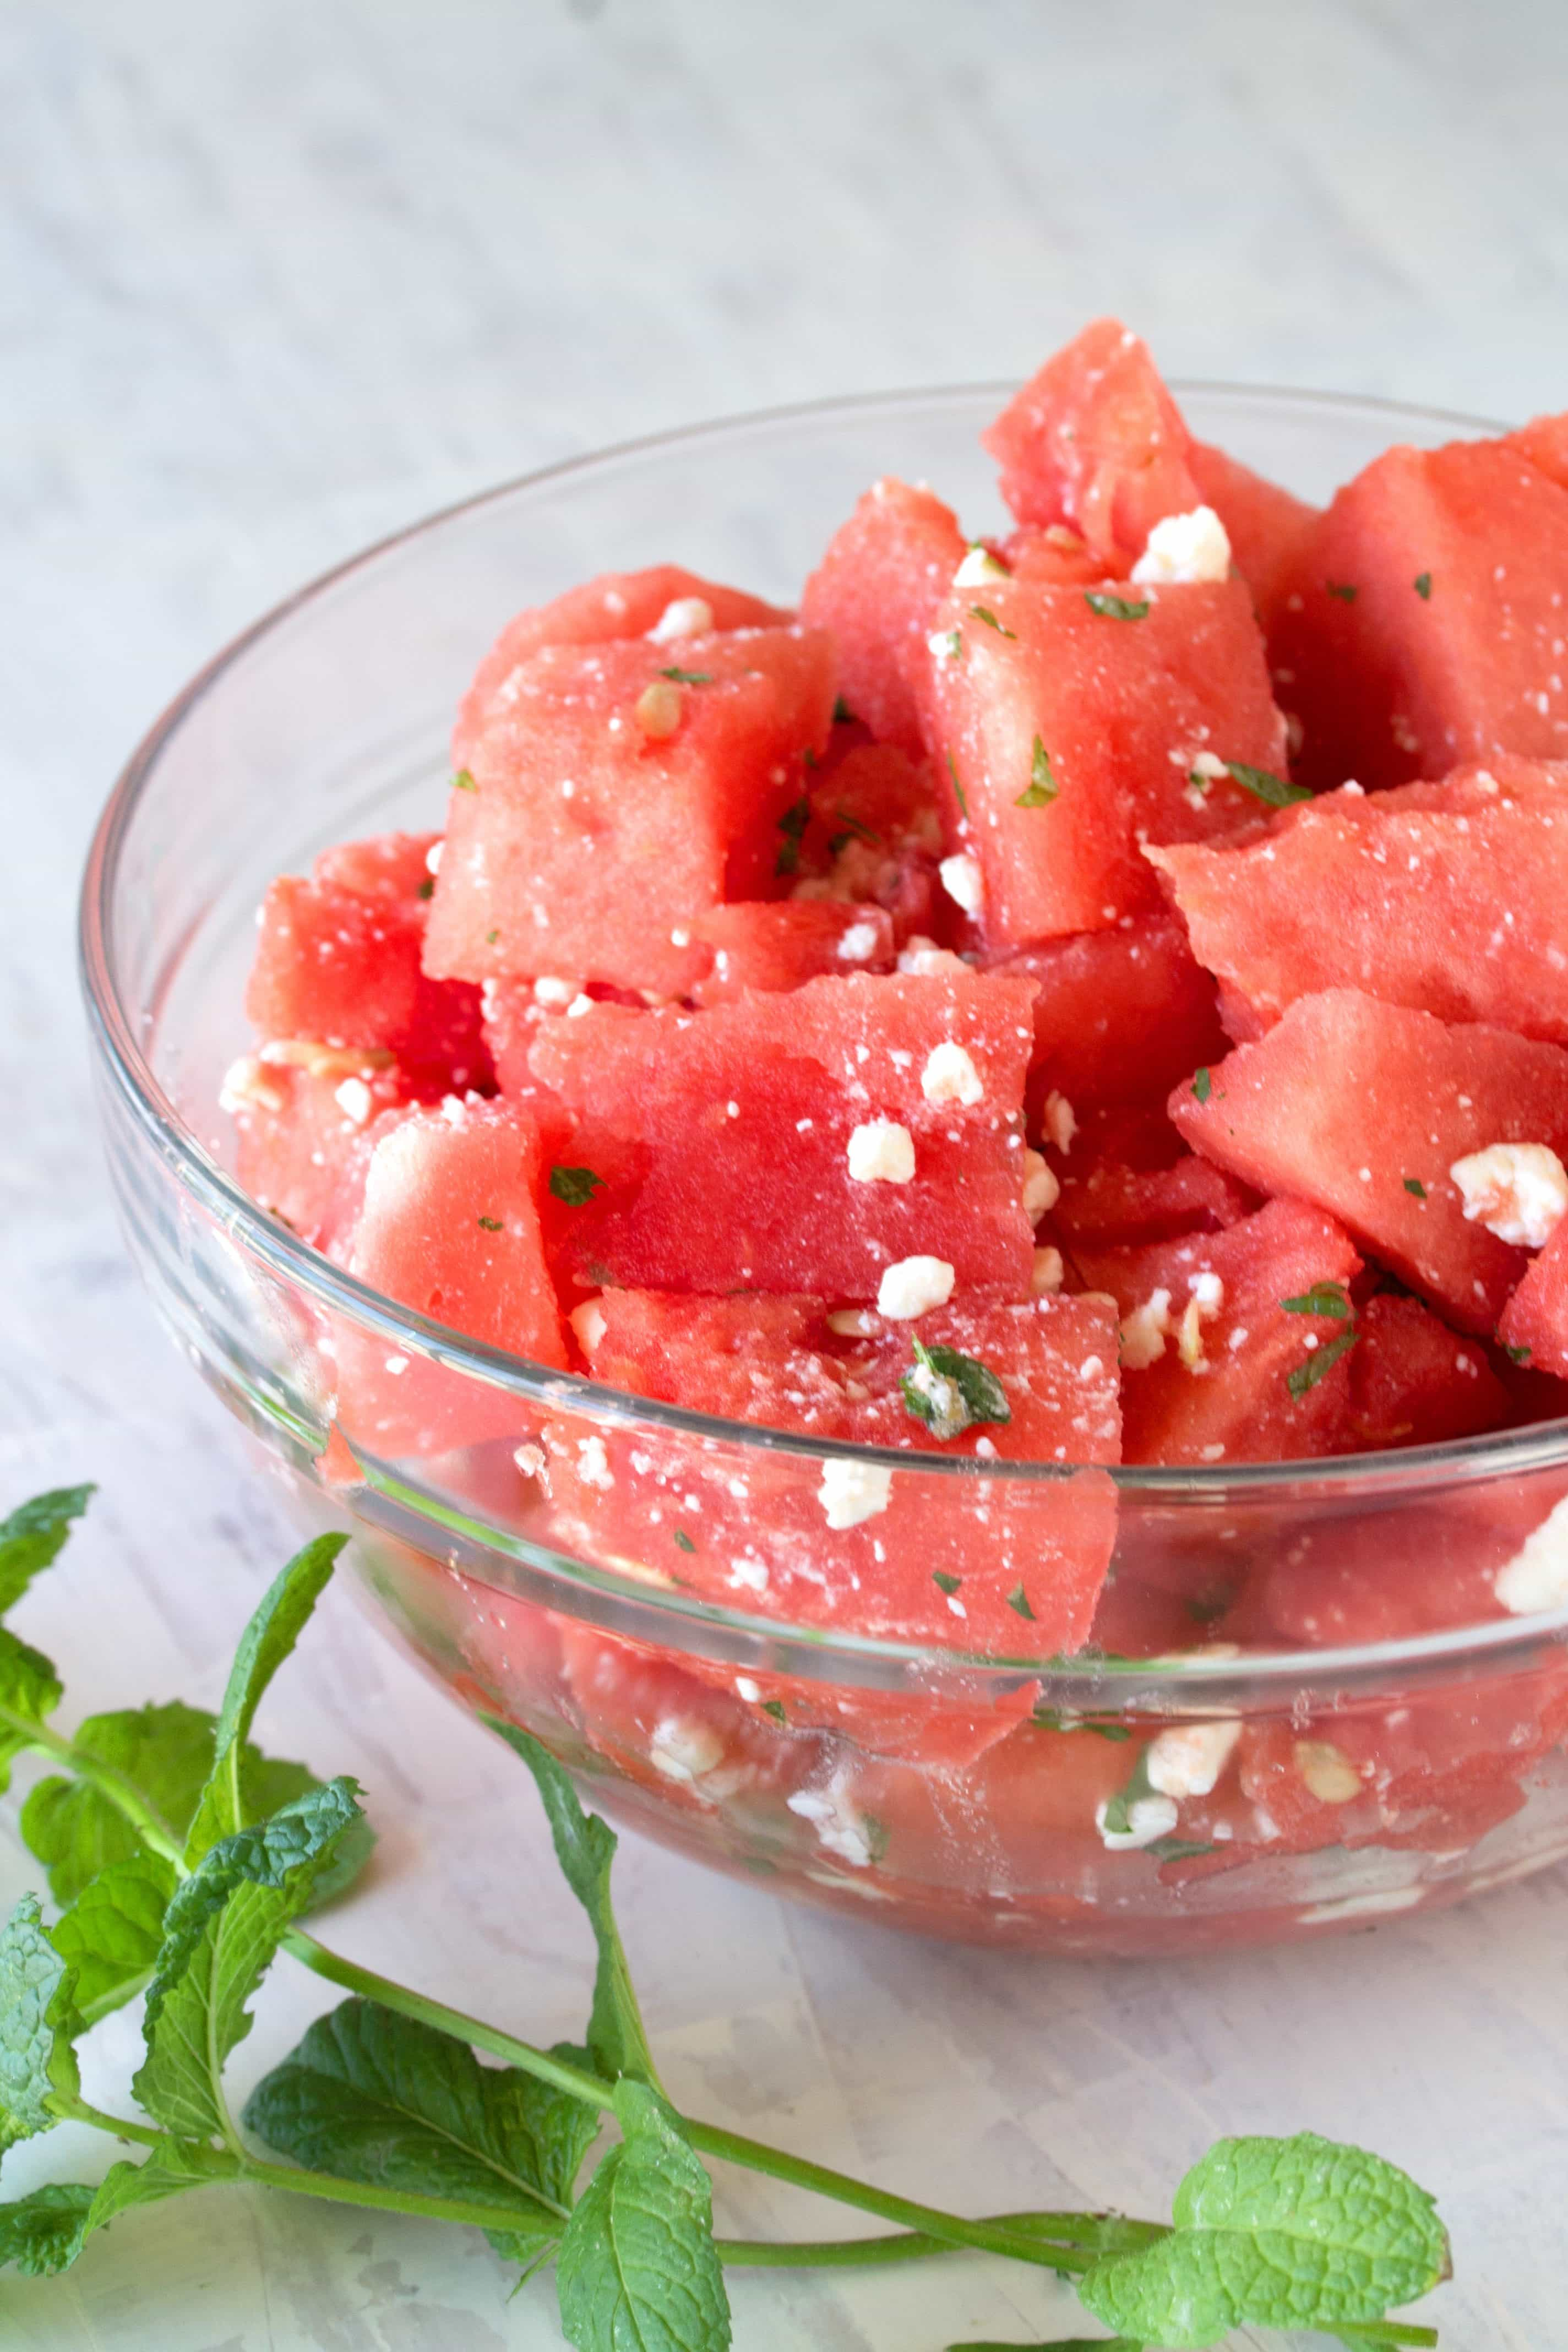 Serve simple summer watermelon up gourmet style with this Watermelon Feta Salad with Mint and Lemon. It's incredibly easy, and oh so tasty!